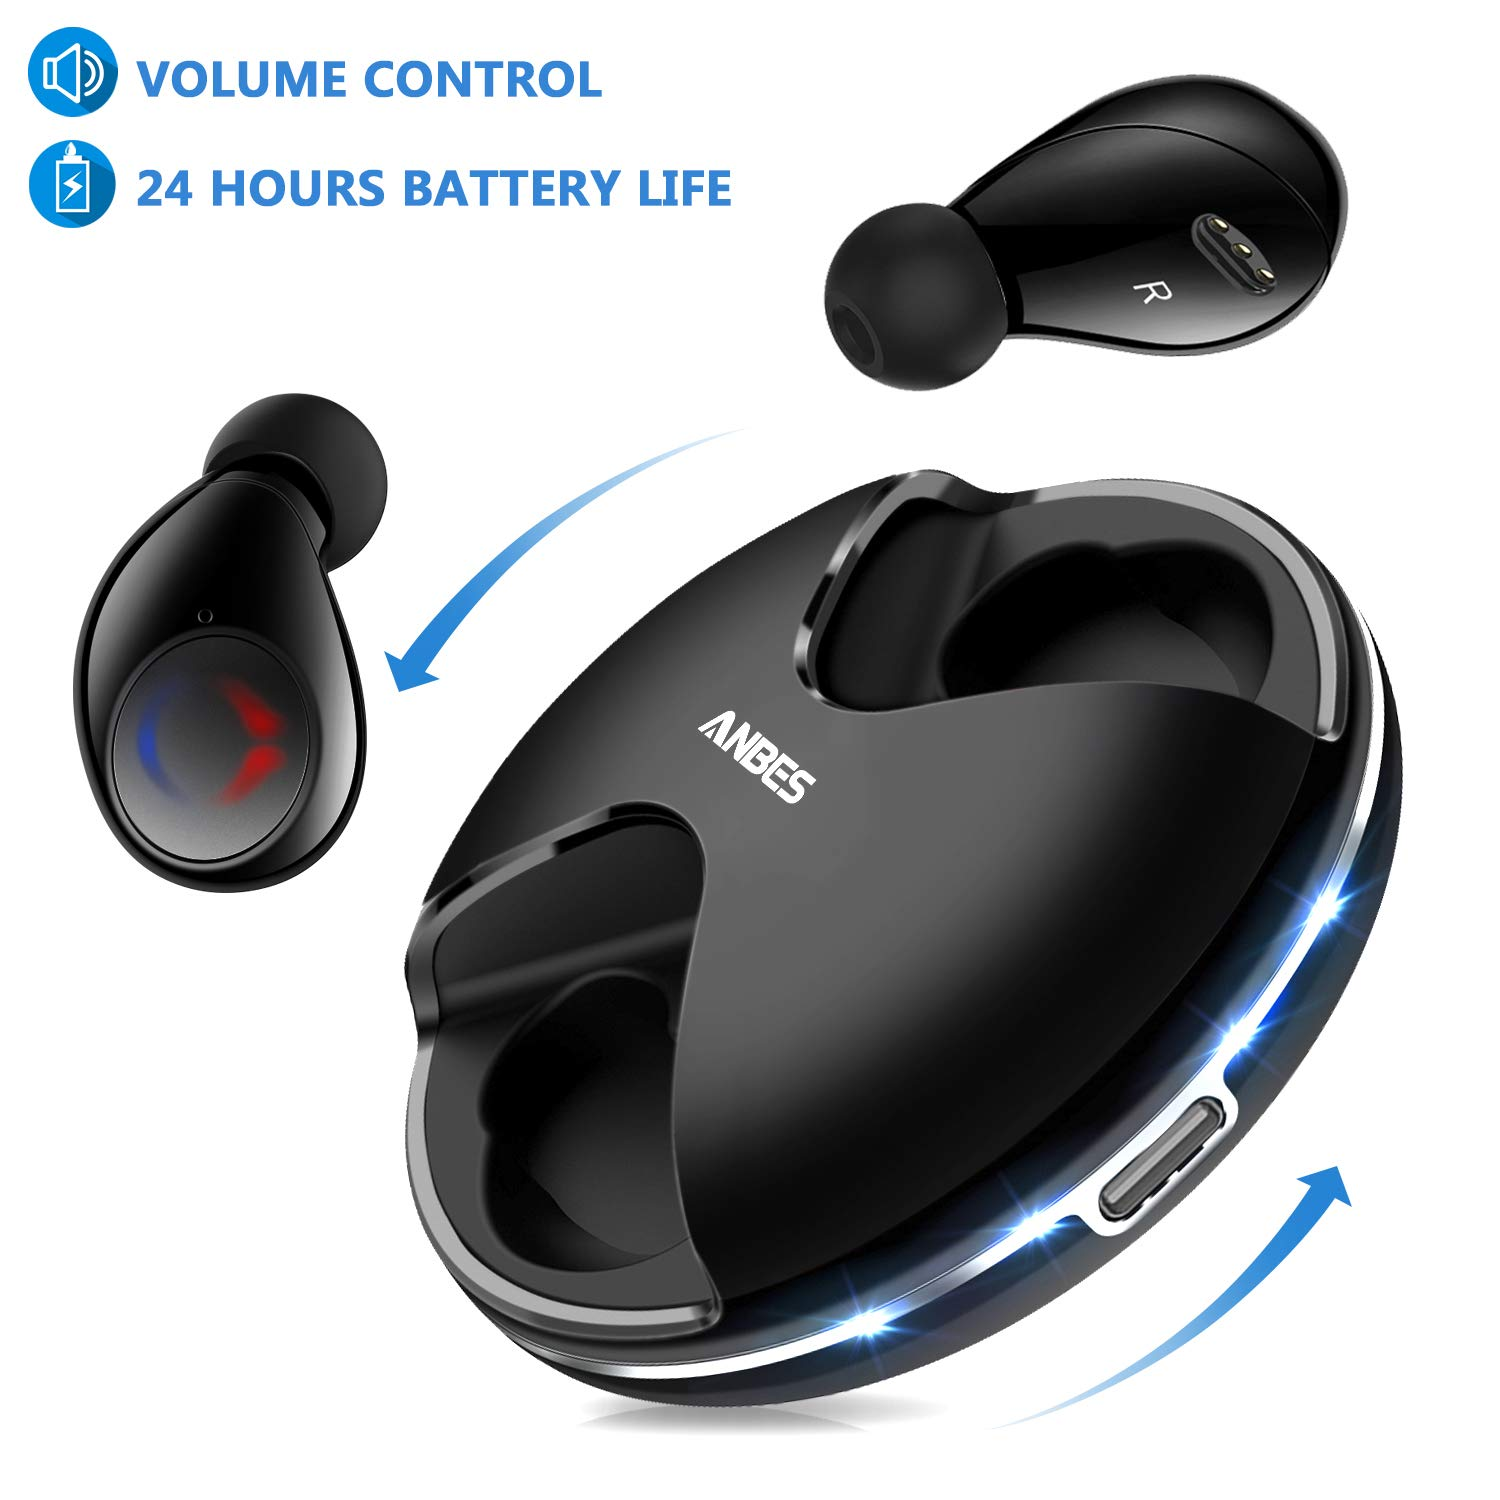 Anbes 359 Bluetooth 5.0 True Wireless Earbuds, 24H Playtime Deep Bass HD Sound, Headphones Noise Cancelling, in-Ear Headset with Built-in Mic Hands-Free Calls